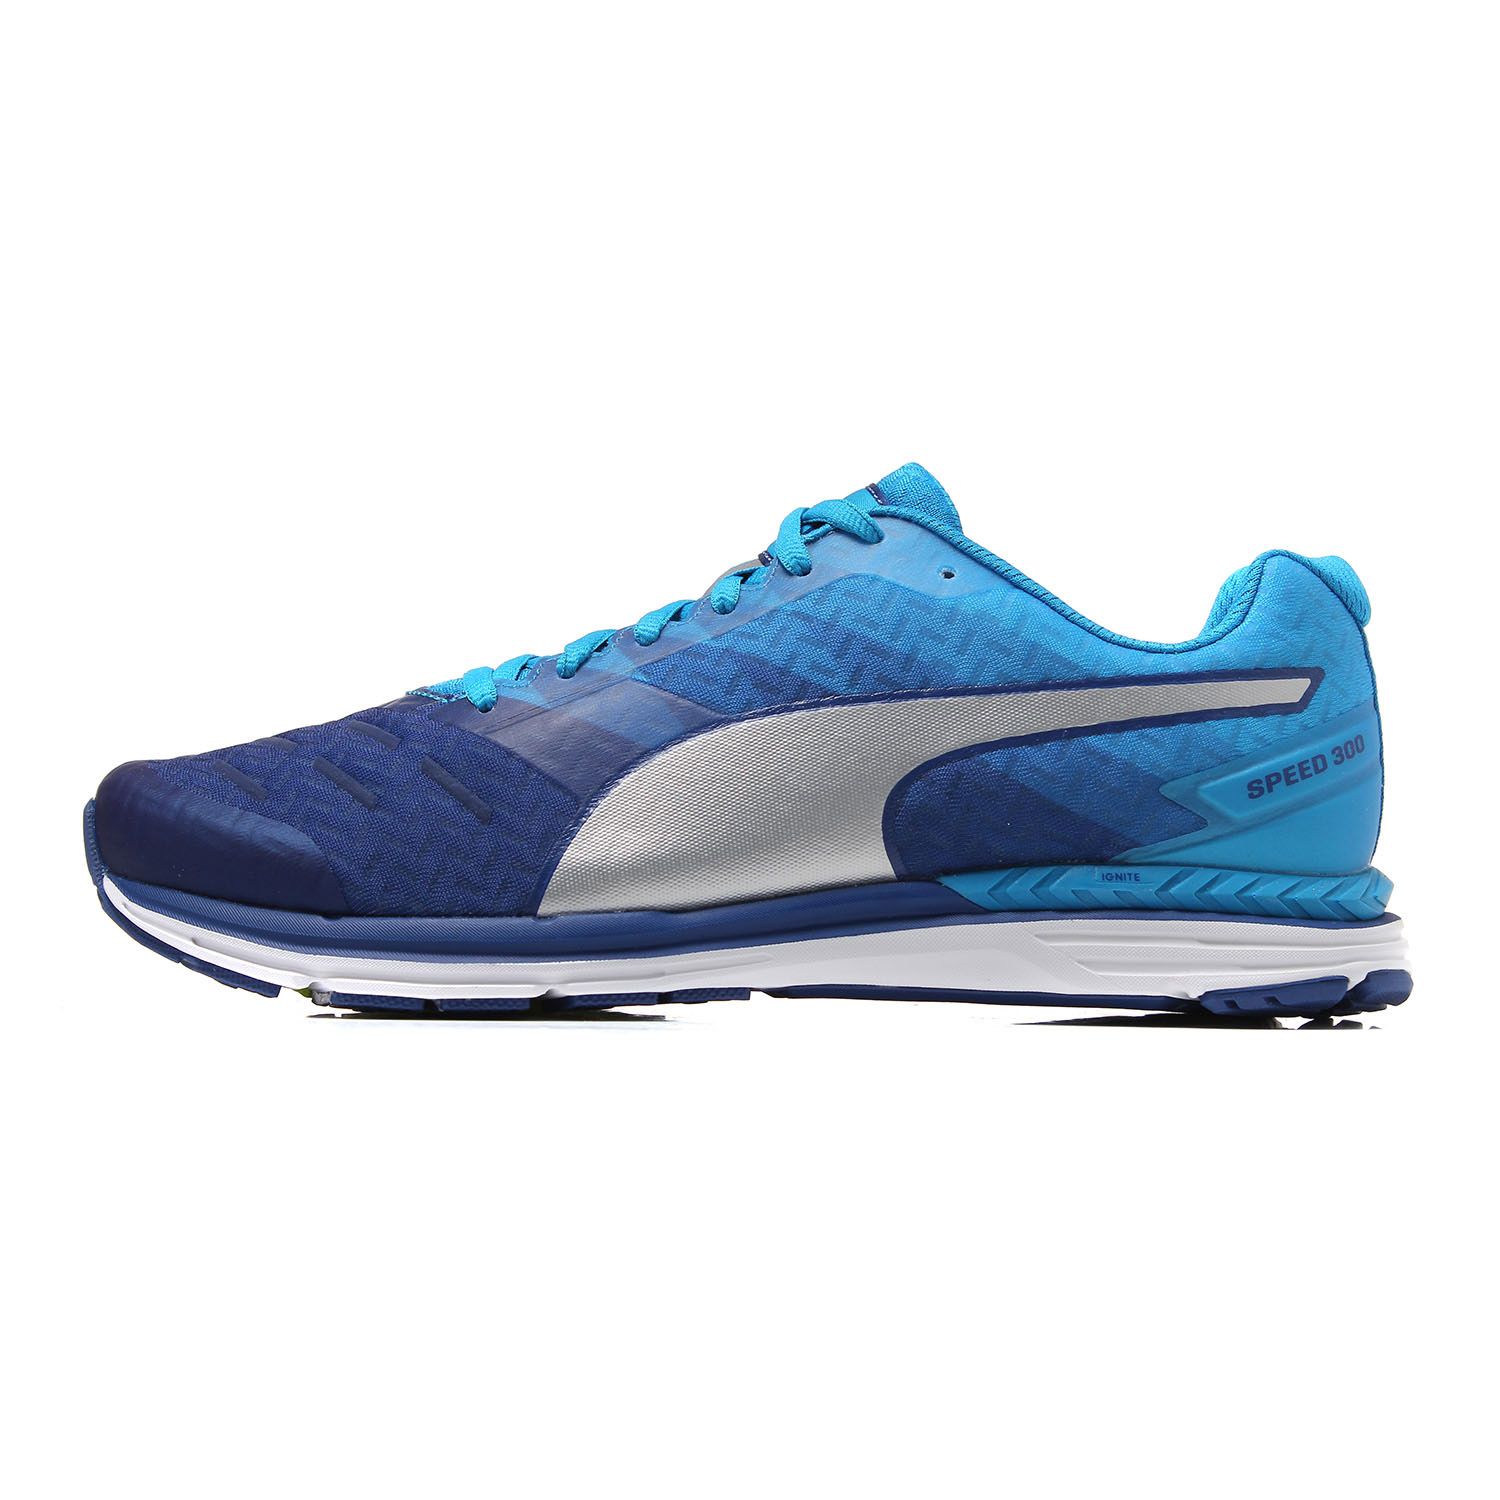 Puma Puma men s shoes running shoes 2017 spring new sports shoes running  Ignite mesh 18811410 ad7cbbed7